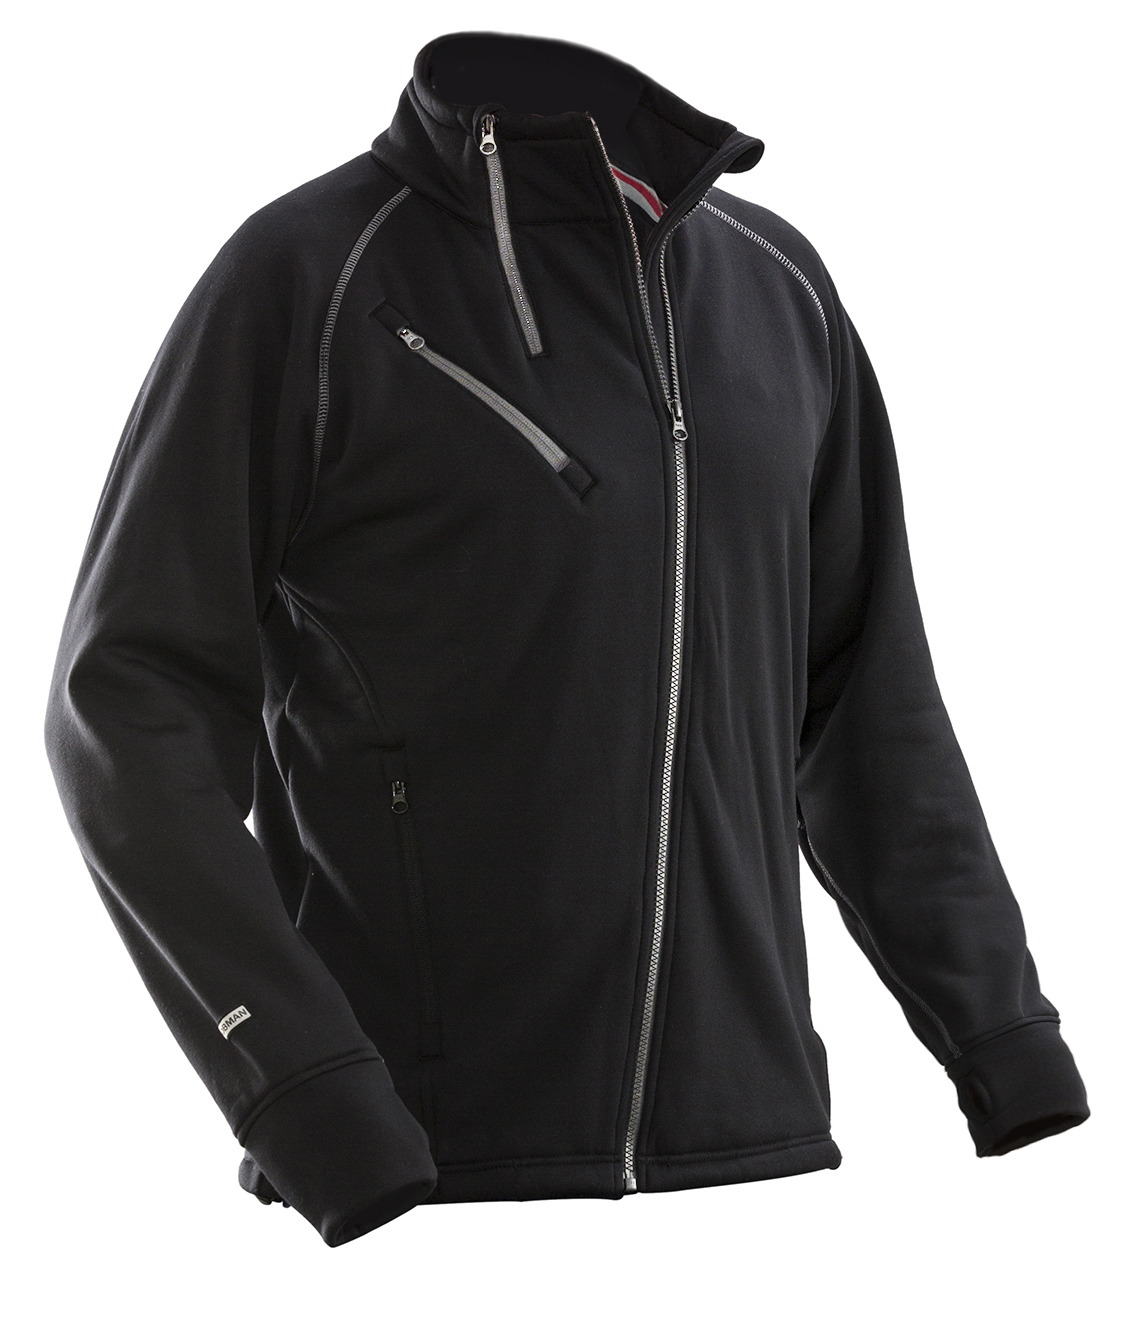 Isolation jacket